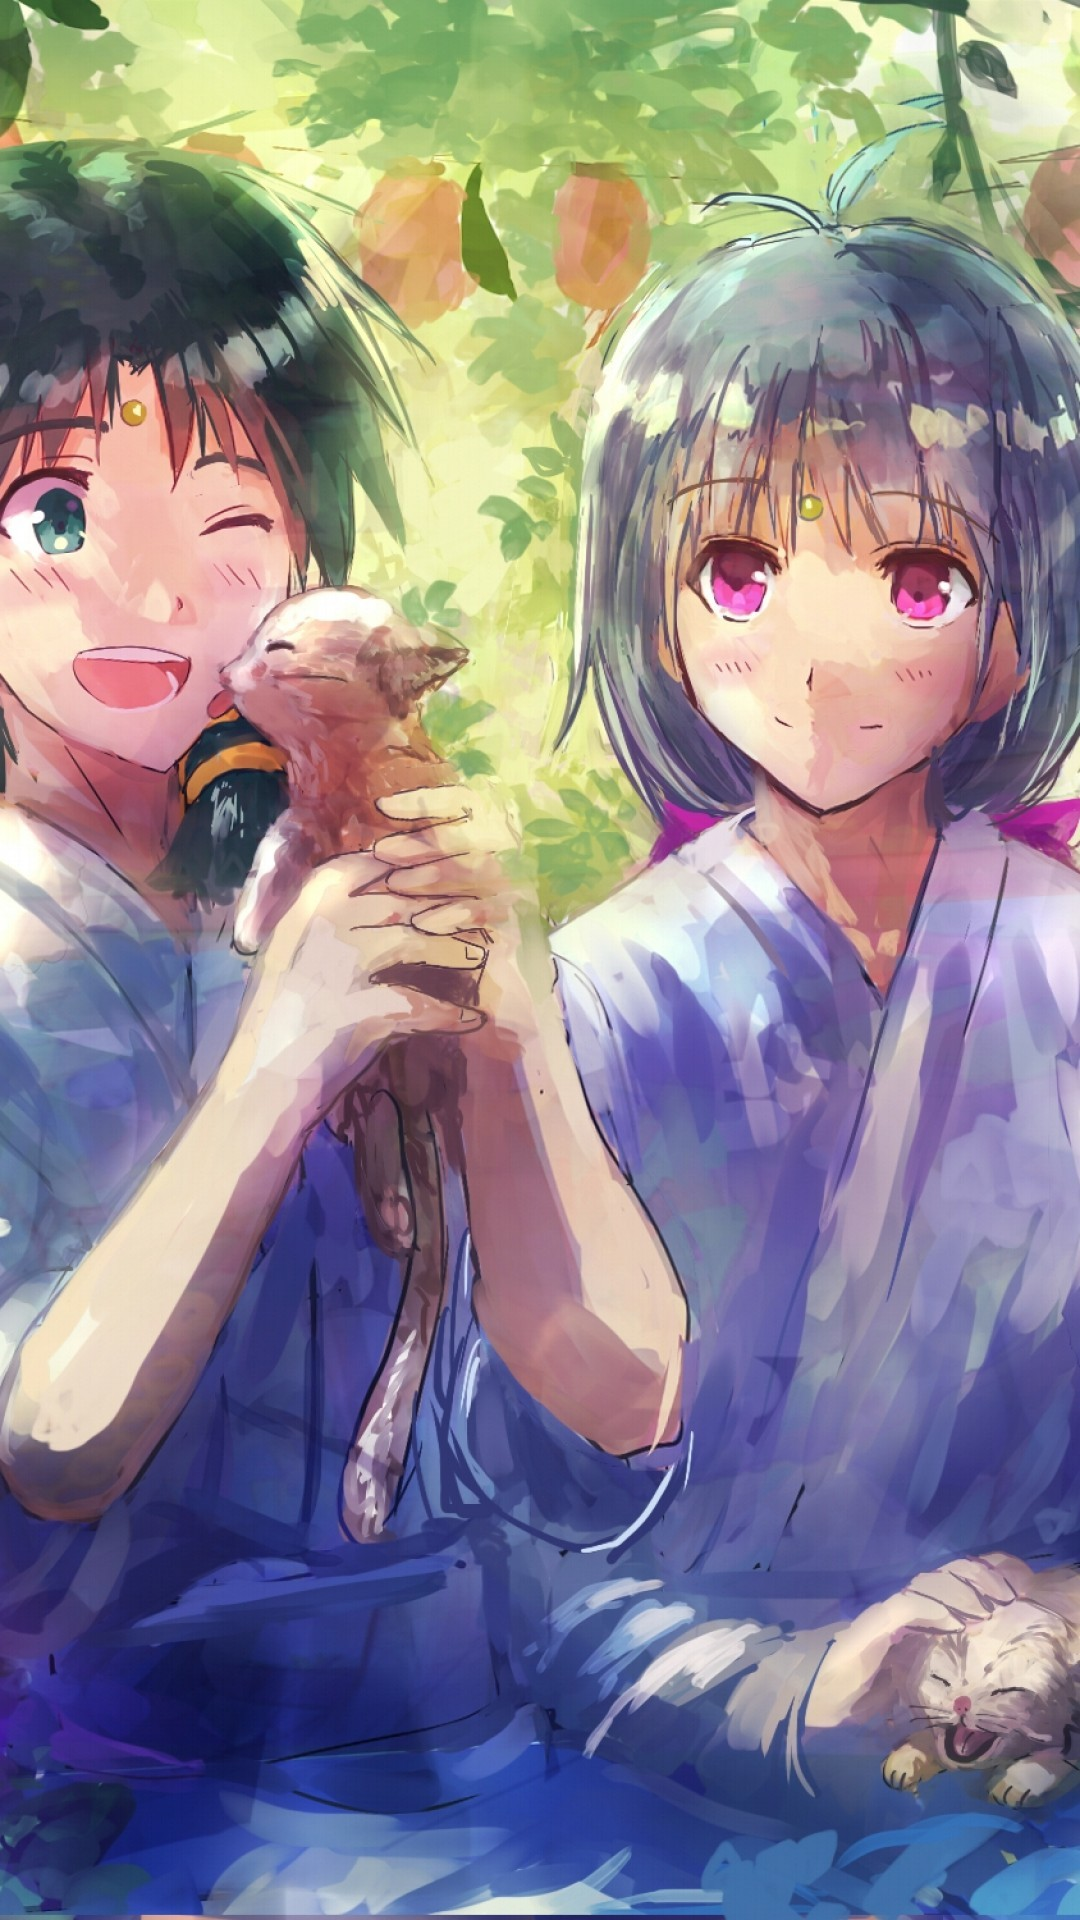 Wallpaper Girl Boy Holding Hands Anime Couple Wallpaper 74 Images